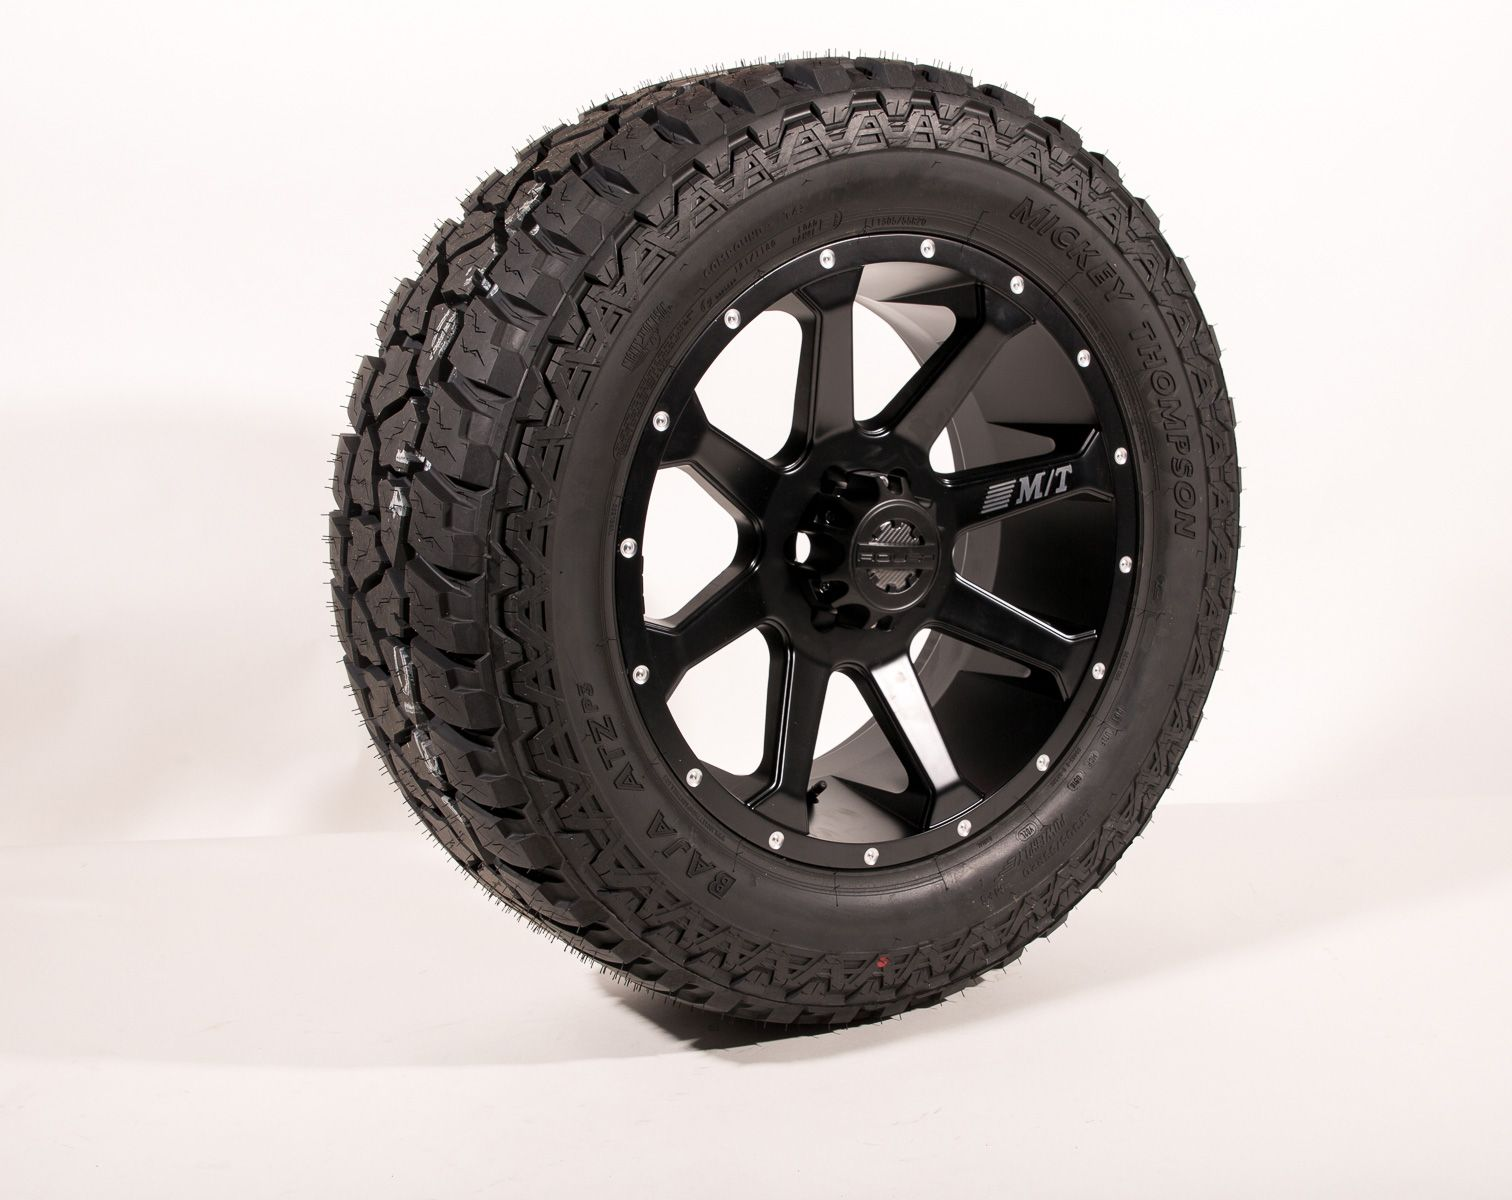 2015 2016 f150 roush wheel and tire package truck wish list pinterest wheels and 20 inch. Black Bedroom Furniture Sets. Home Design Ideas